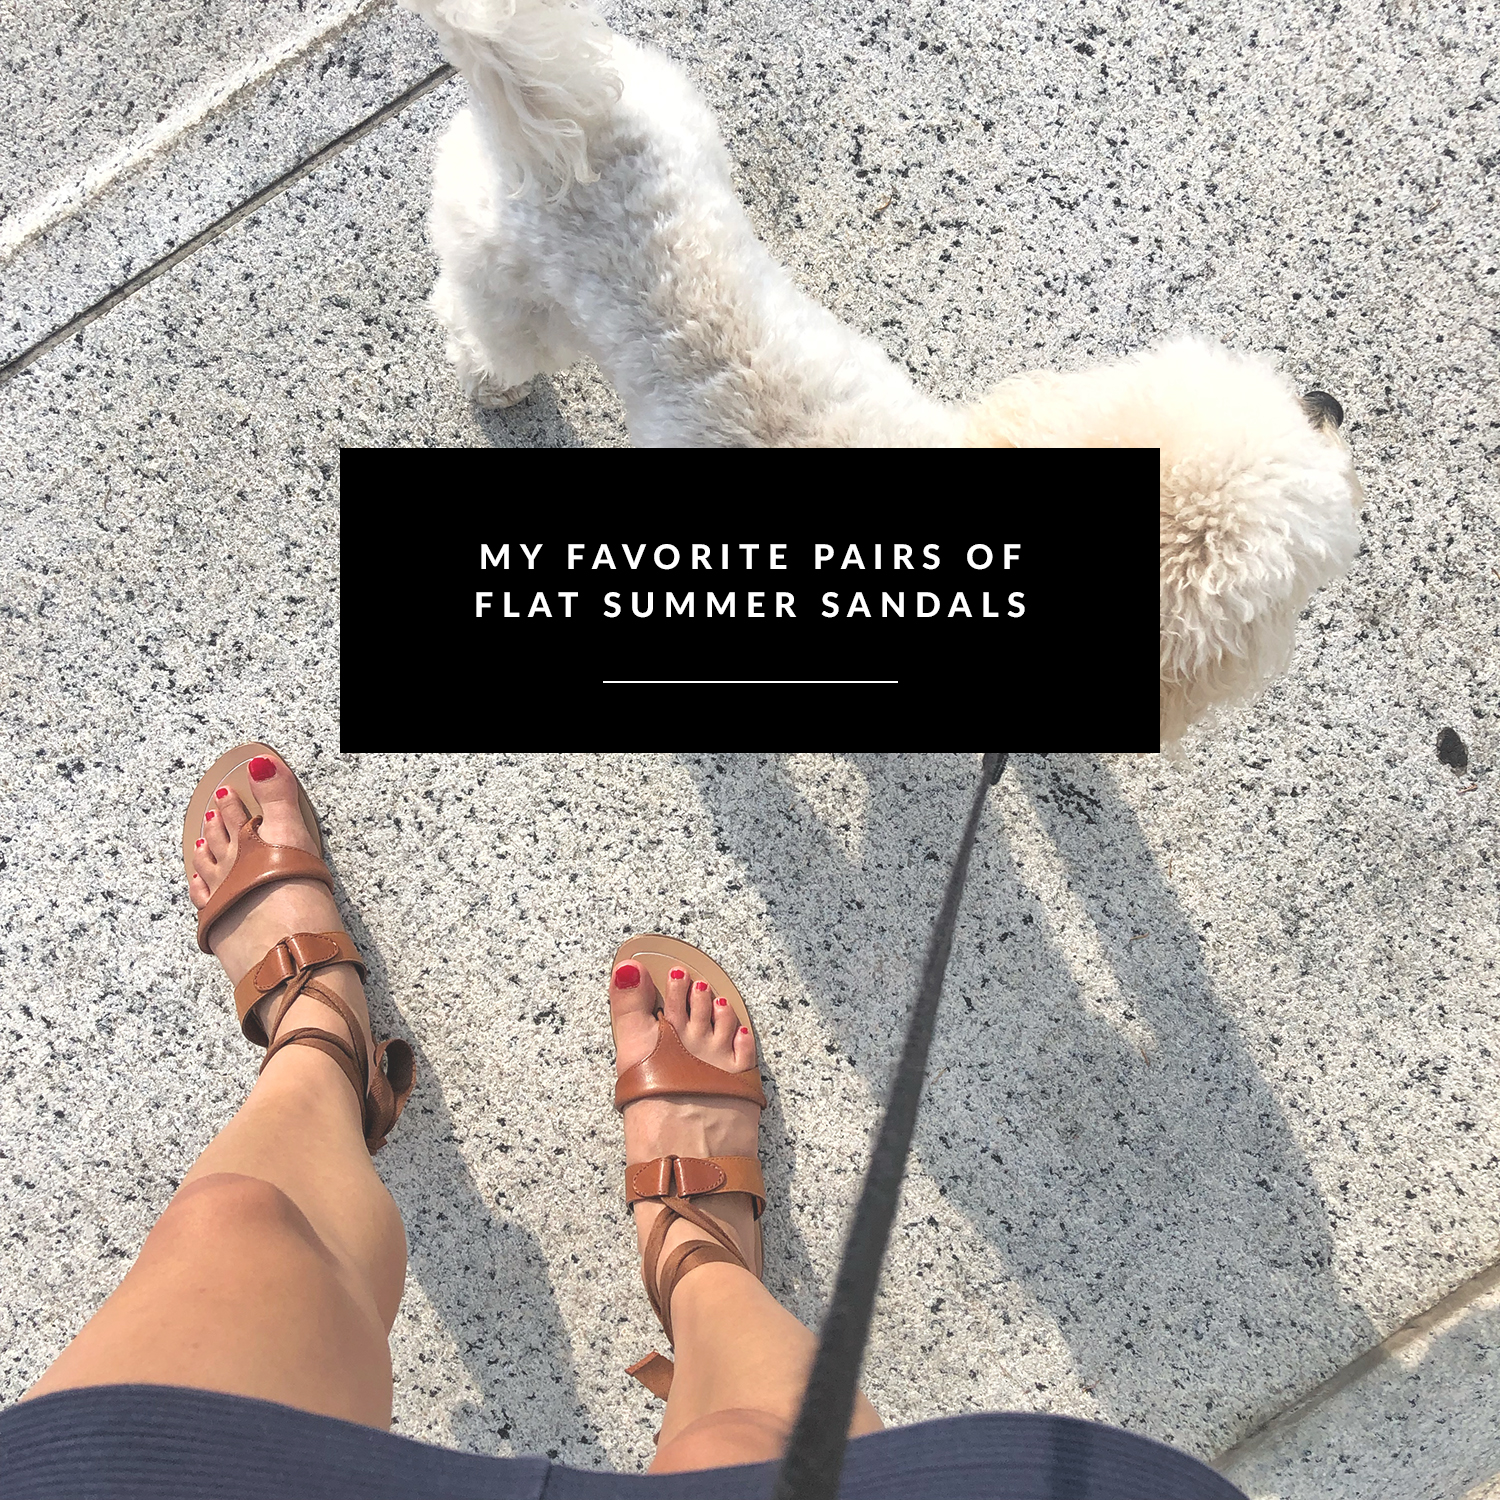 Favorite pair of flat summer sandals